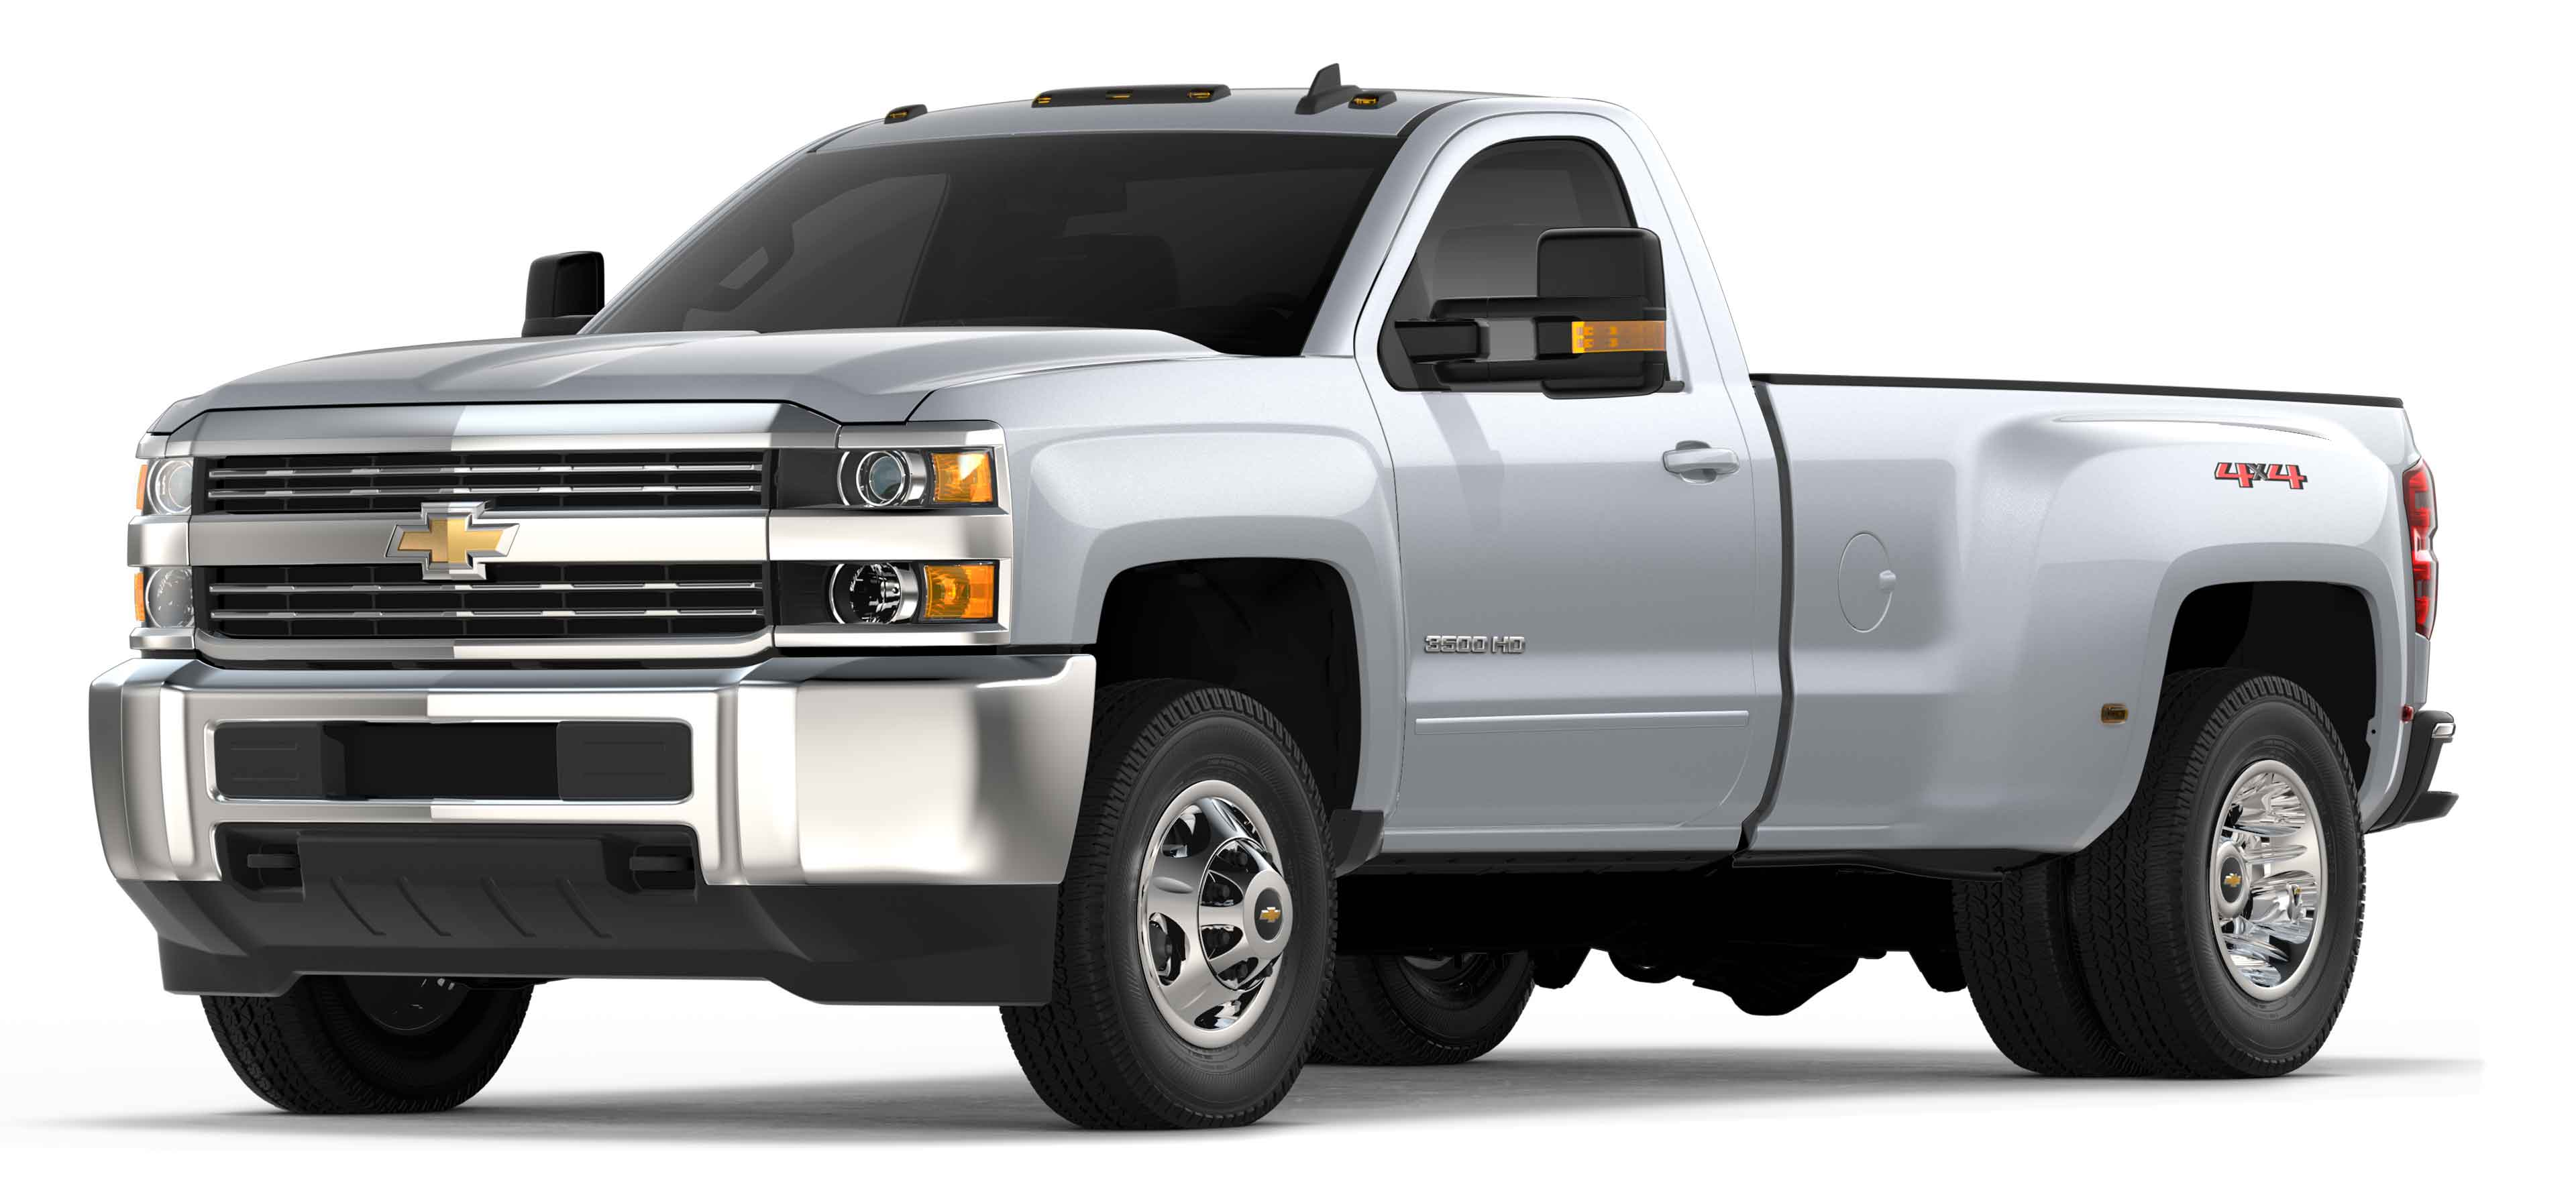 Chevrolet Silverado 3500hd Seattle >> Search Chevrolet Seattle Silverado 3500 Renton Chevrolet Silverado 3500